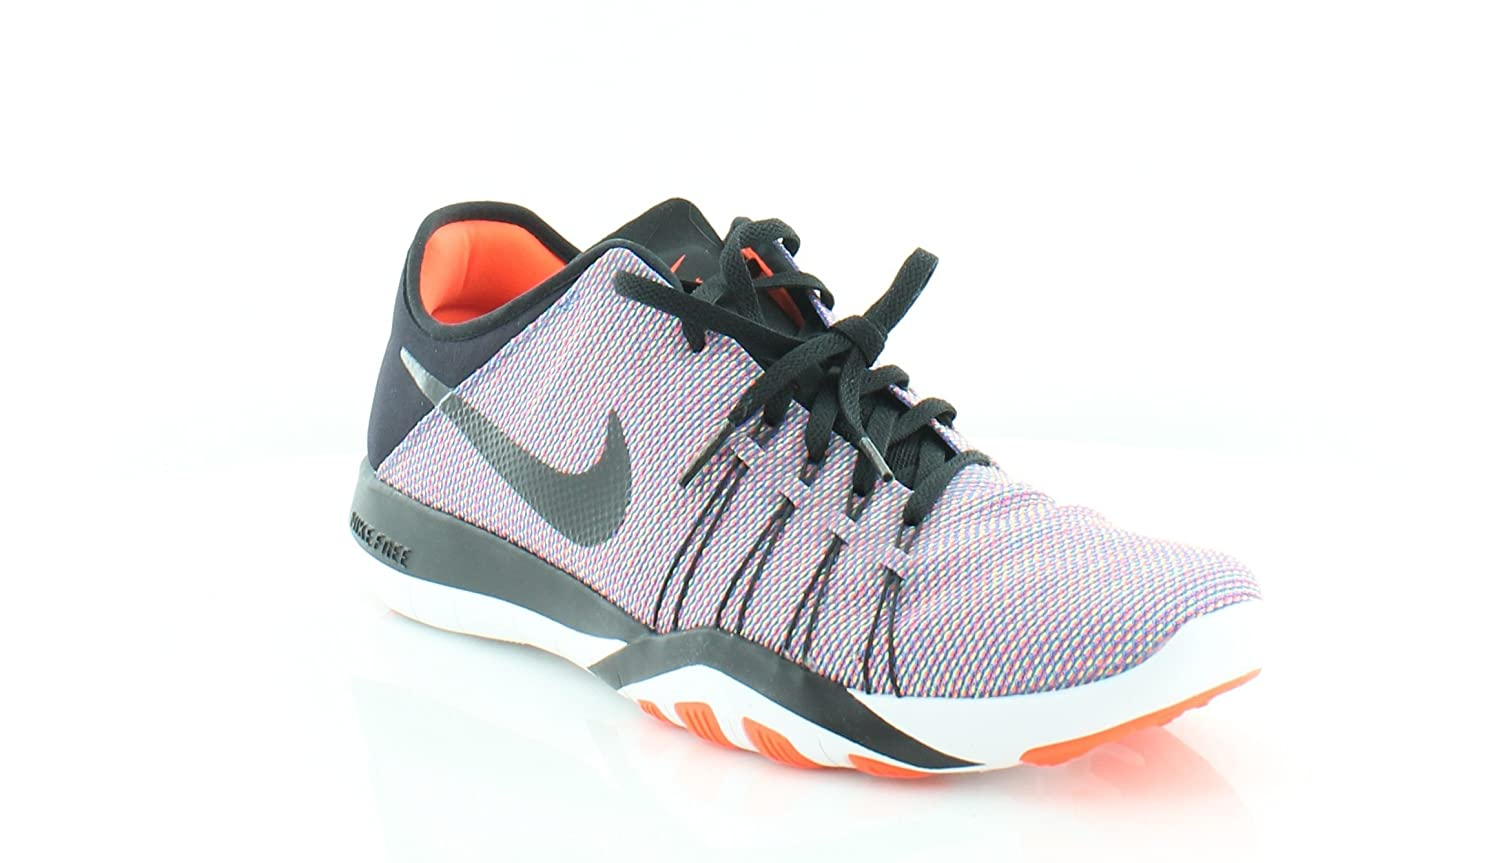 Womens Nike Free TR 6 Training Shoes B01FTKX4VC 9 B(M) US|Black / Total Crimson - White